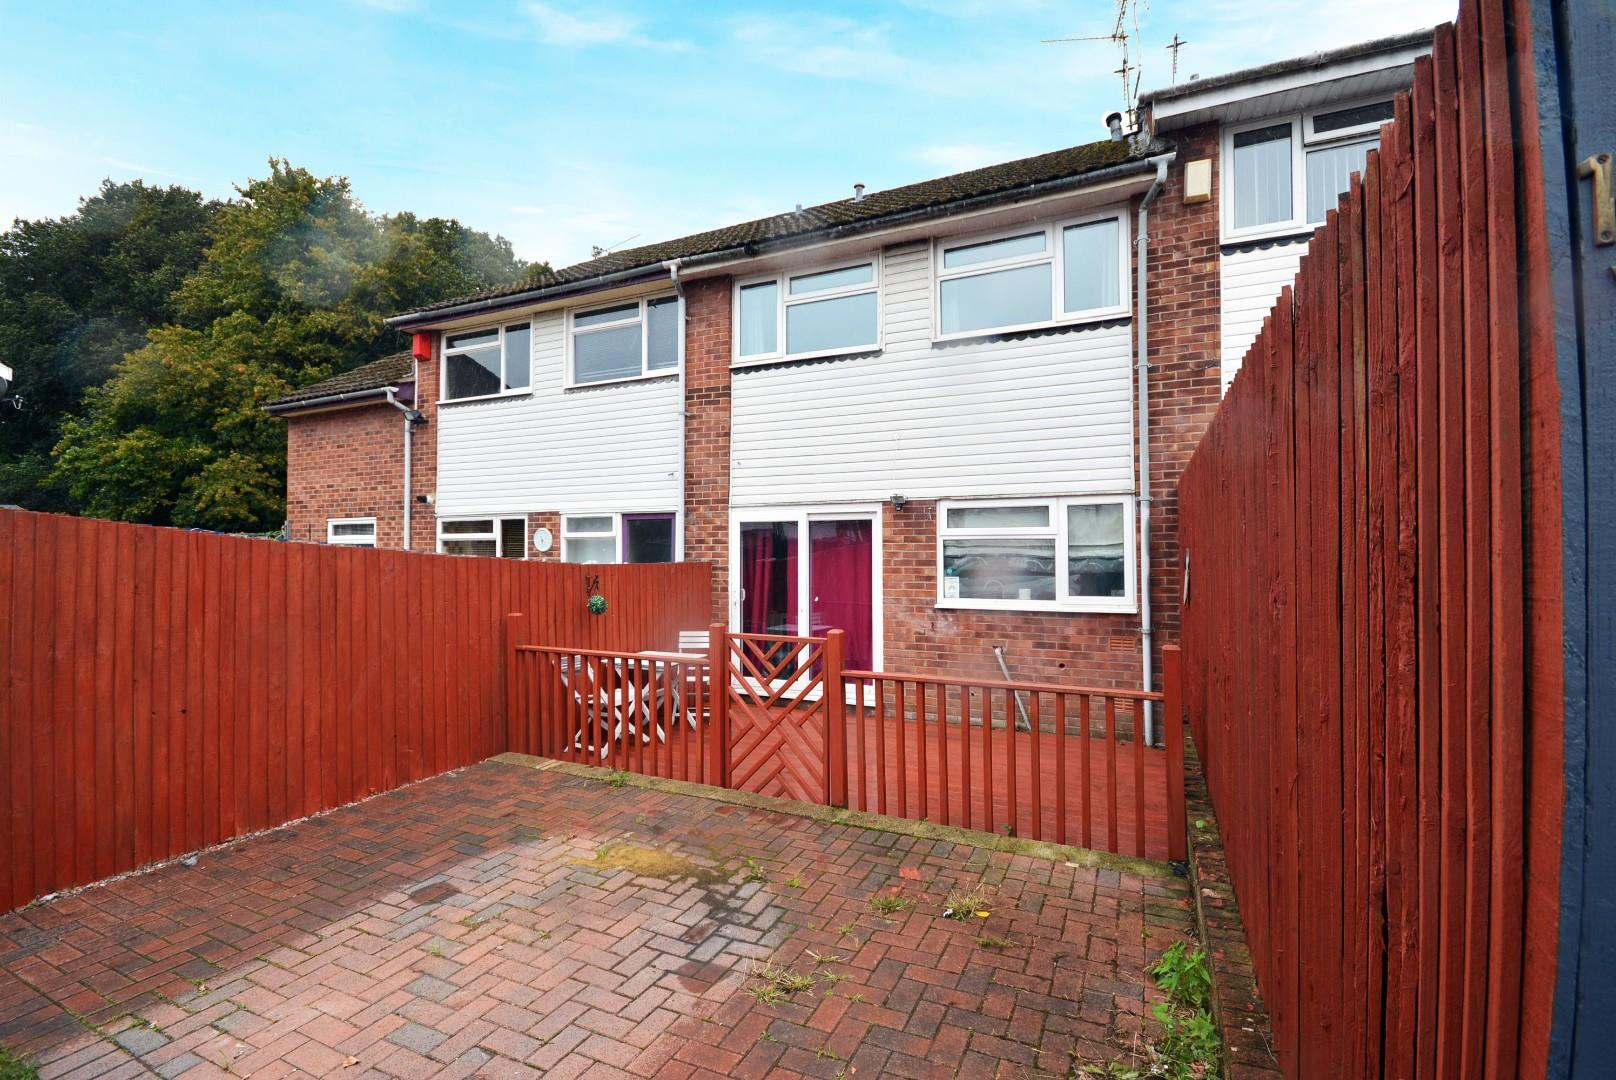 3 bed terraced house for sale in The Hawthorns, Cardiff - Property Image 1